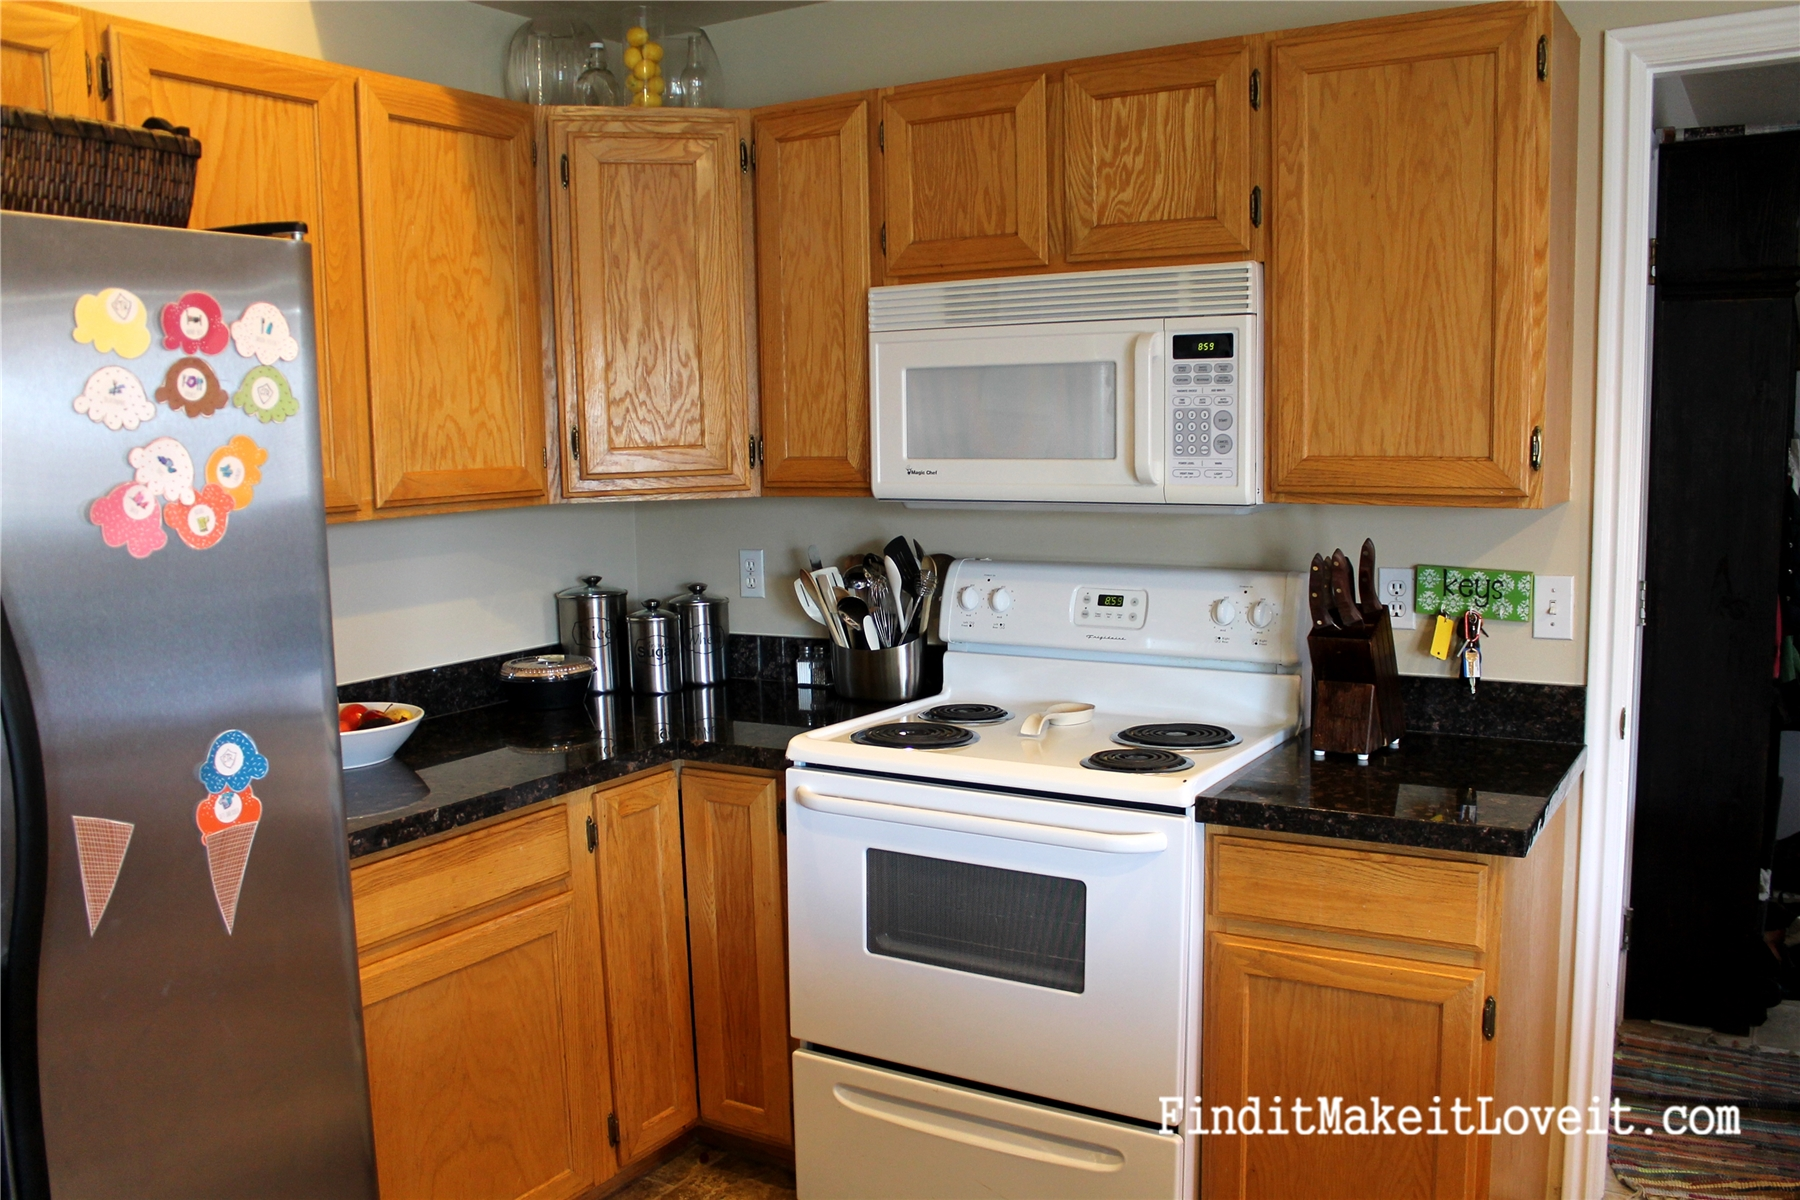 paint kitchen cabinets diy 150 kitchen cabinet makeover find it make it it 24299